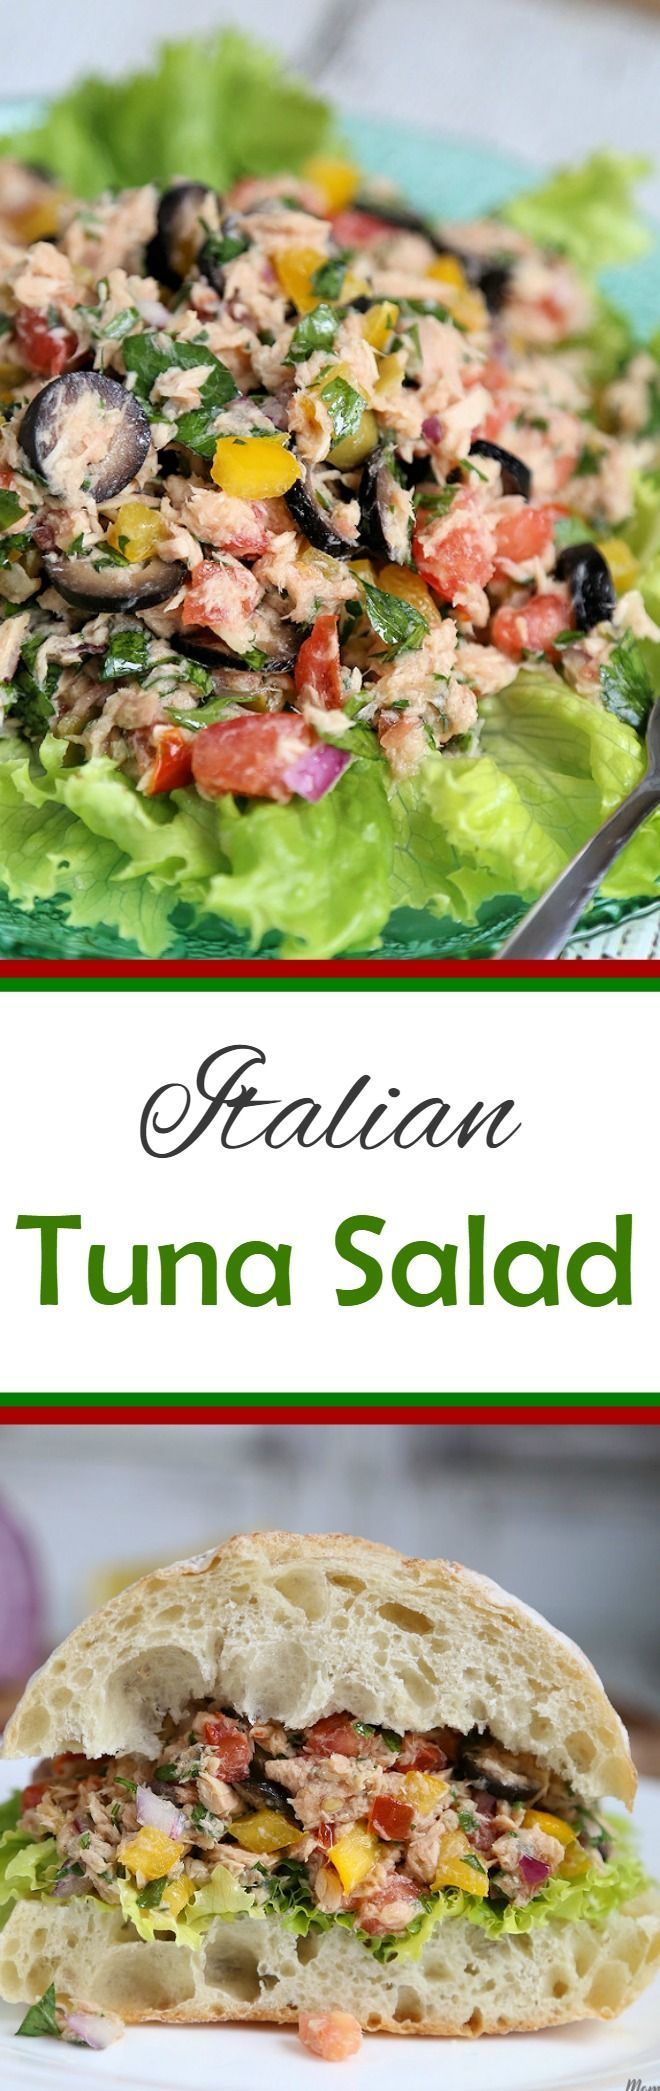 Italian Tuna Salad - perfect light summer lunch or make sandwiches!  #GenovaSeafood